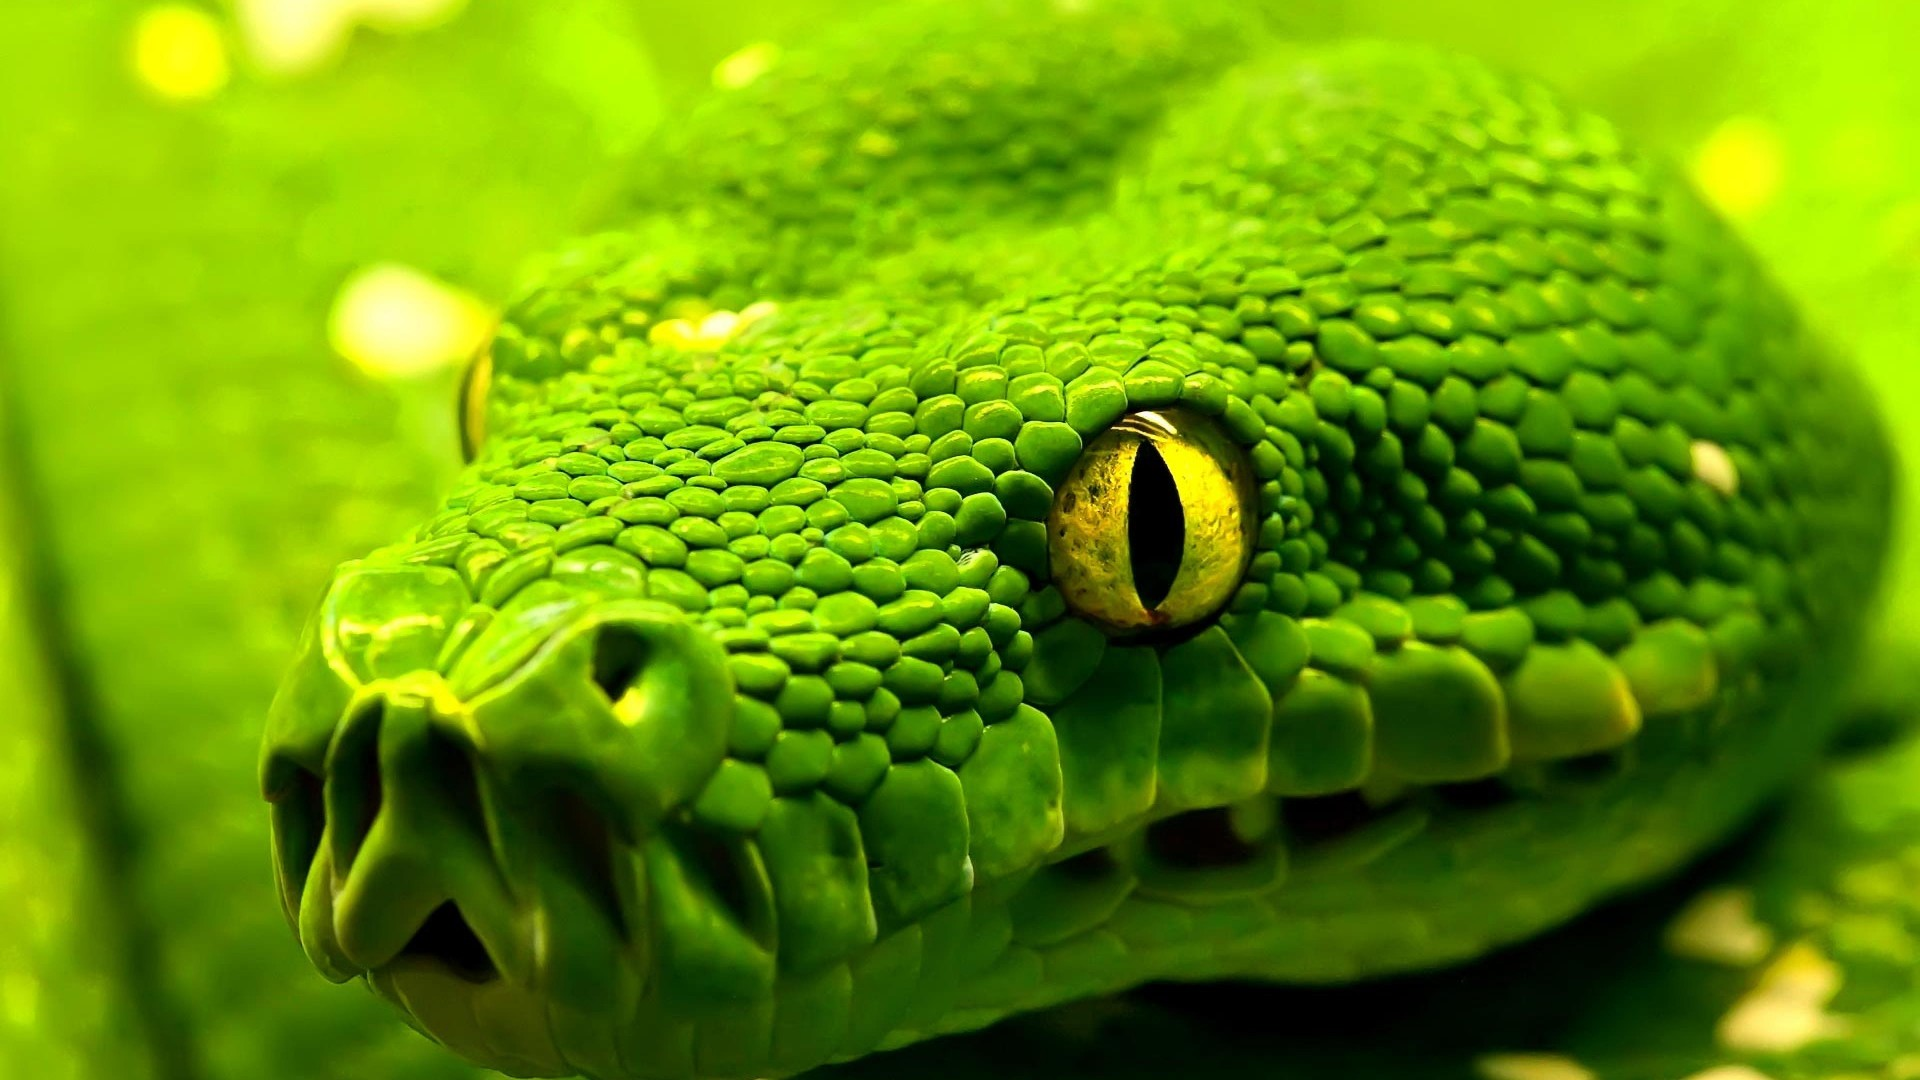 Snake, green, reptile, eyes (horizontal)